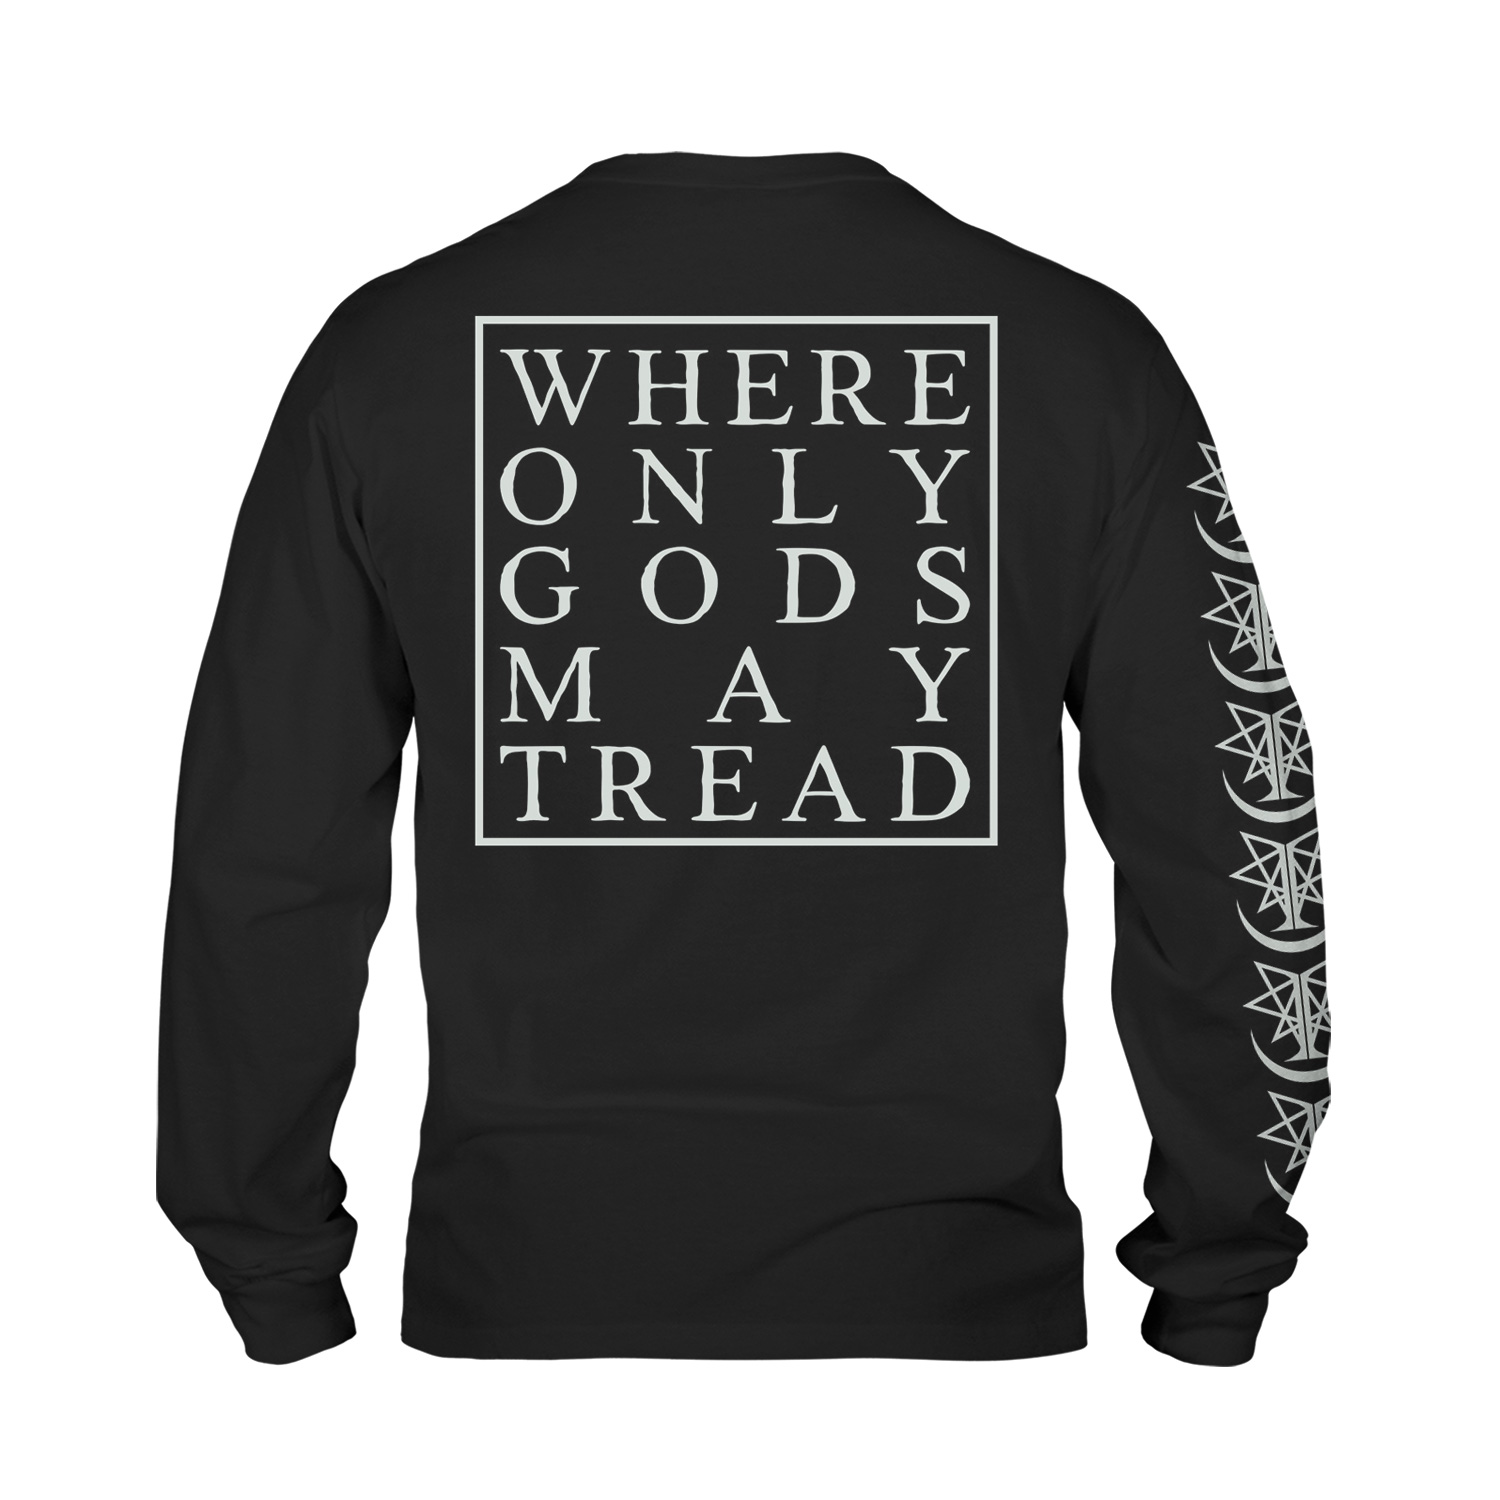 Where Only Gods May Tread (black)